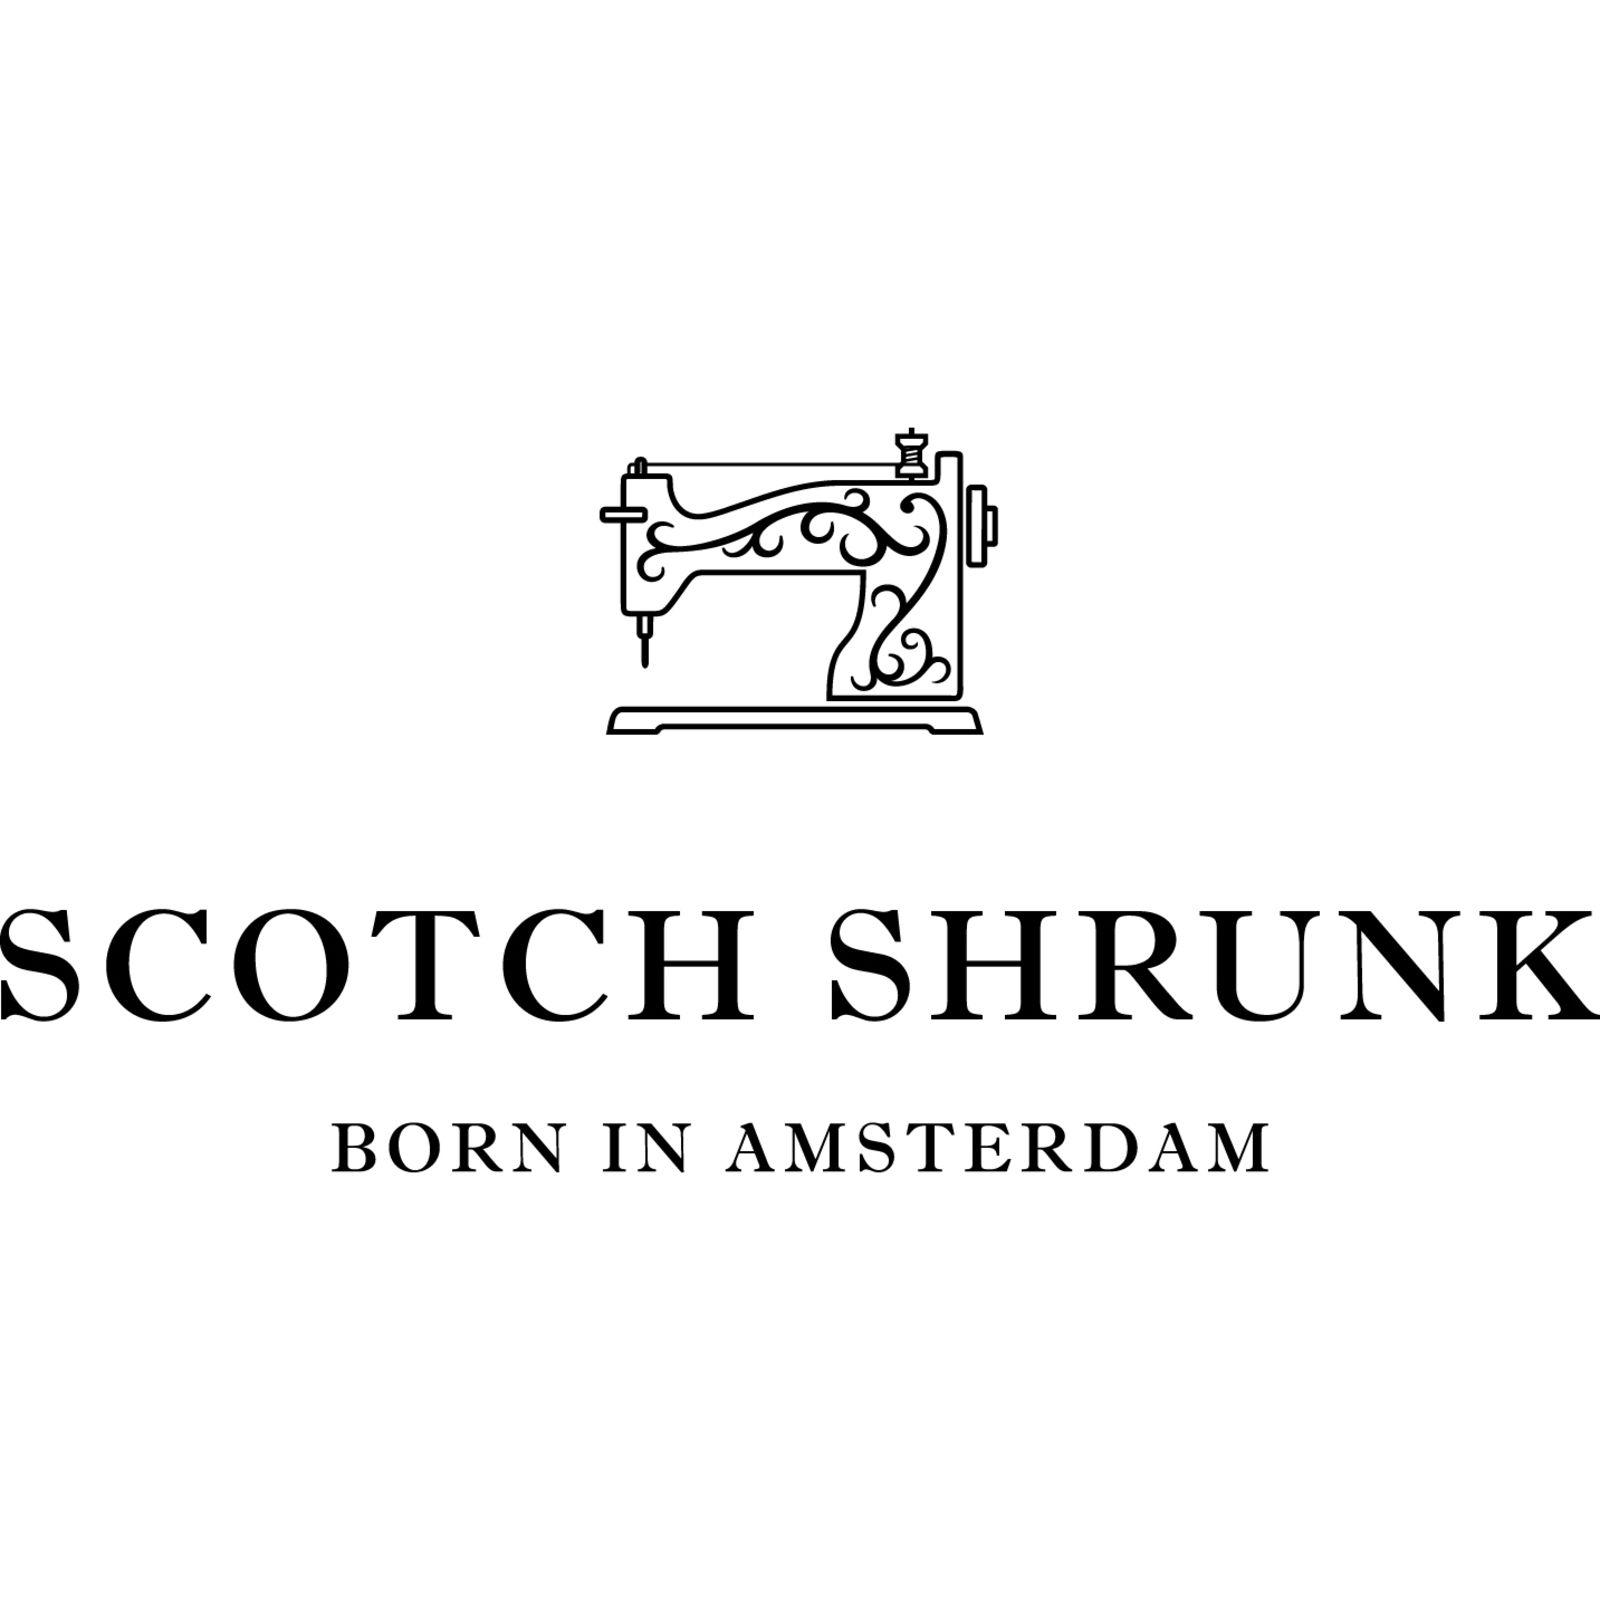 SCOTCH SHRUNK (Bild 1)